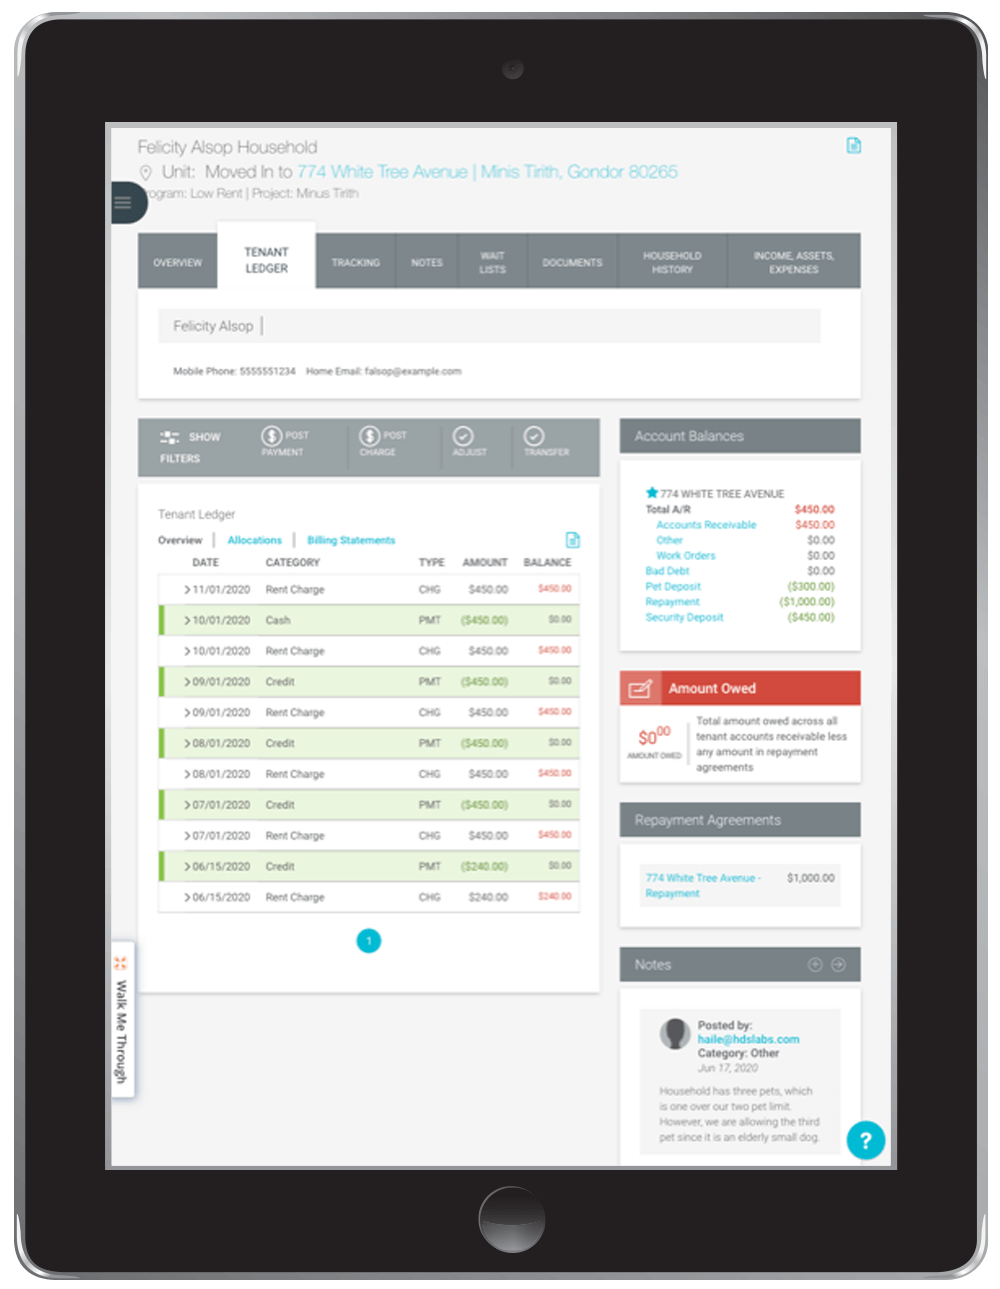 Doorways housing management software - work order on iPad